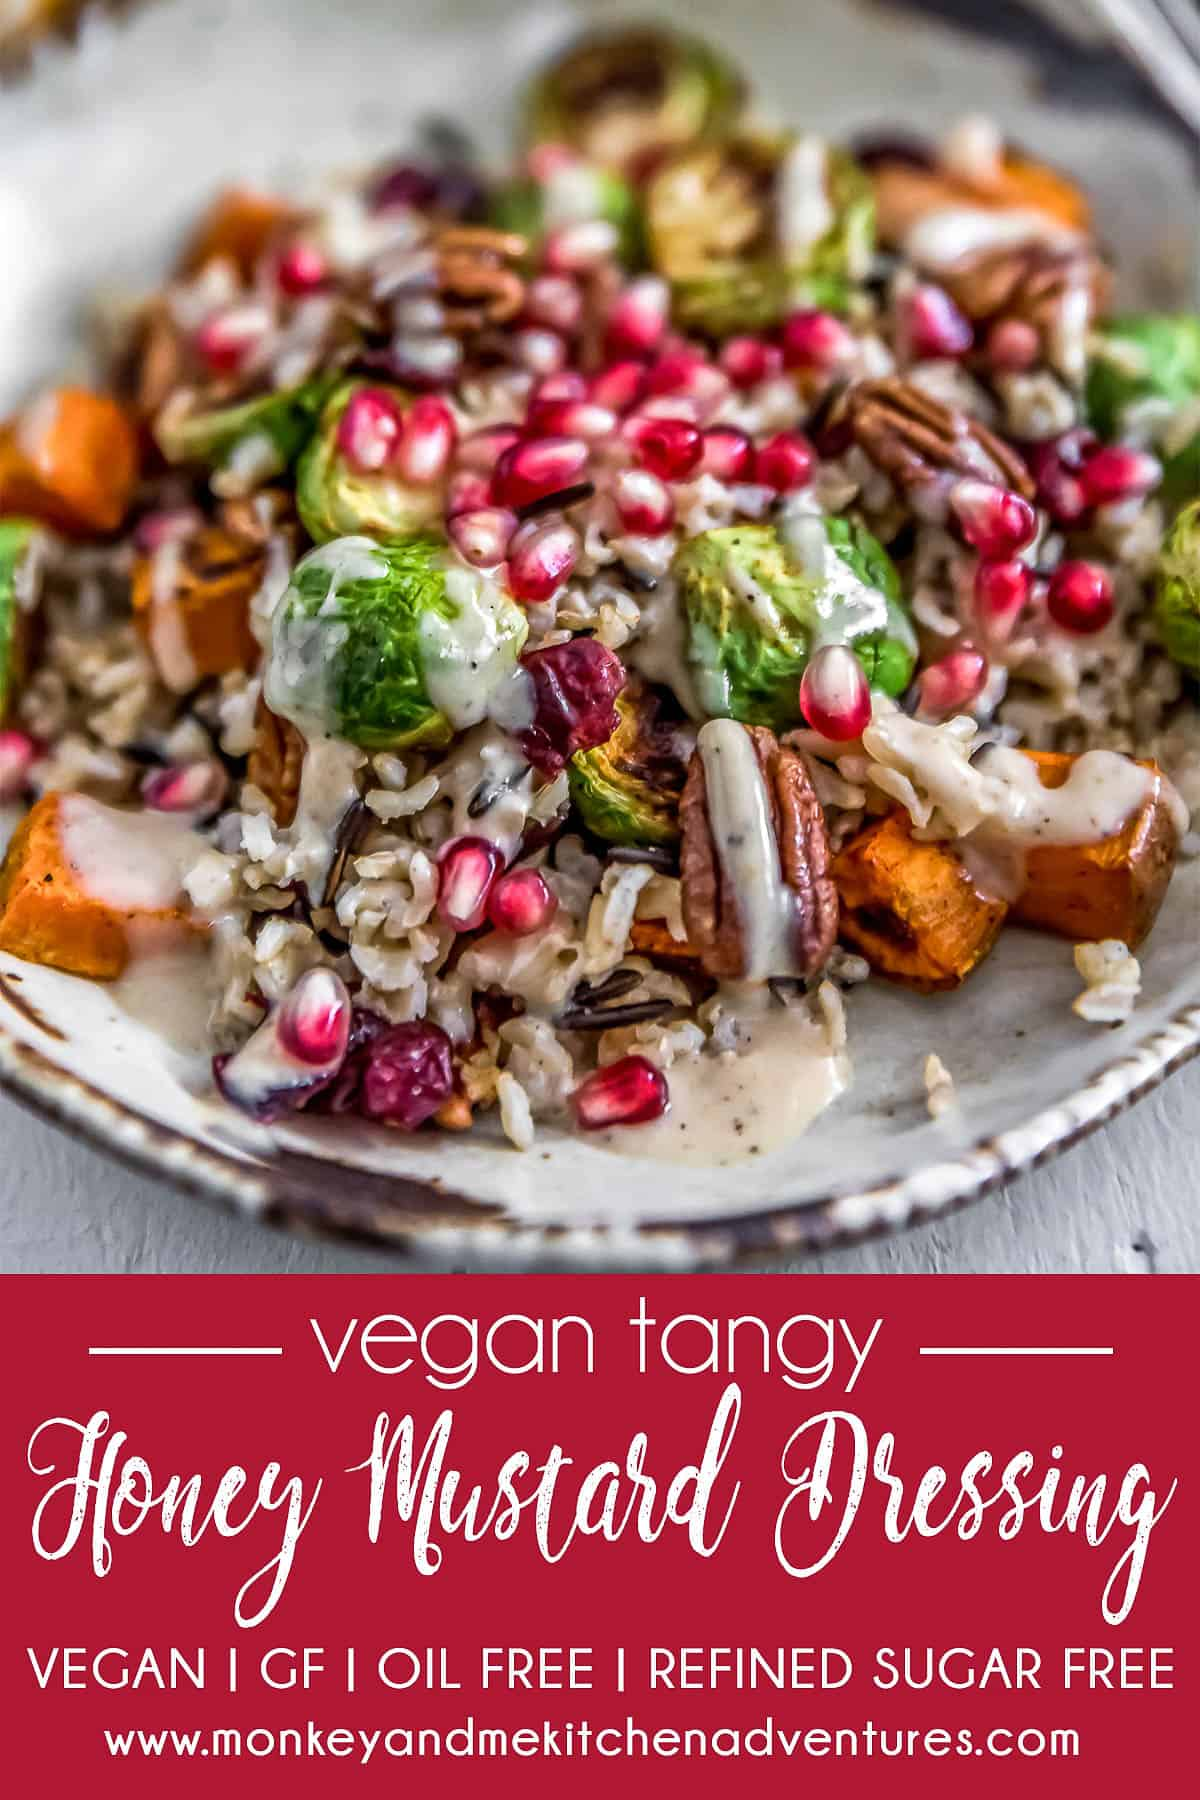 Vegan Tangy Honey Mustard Dressing with text description